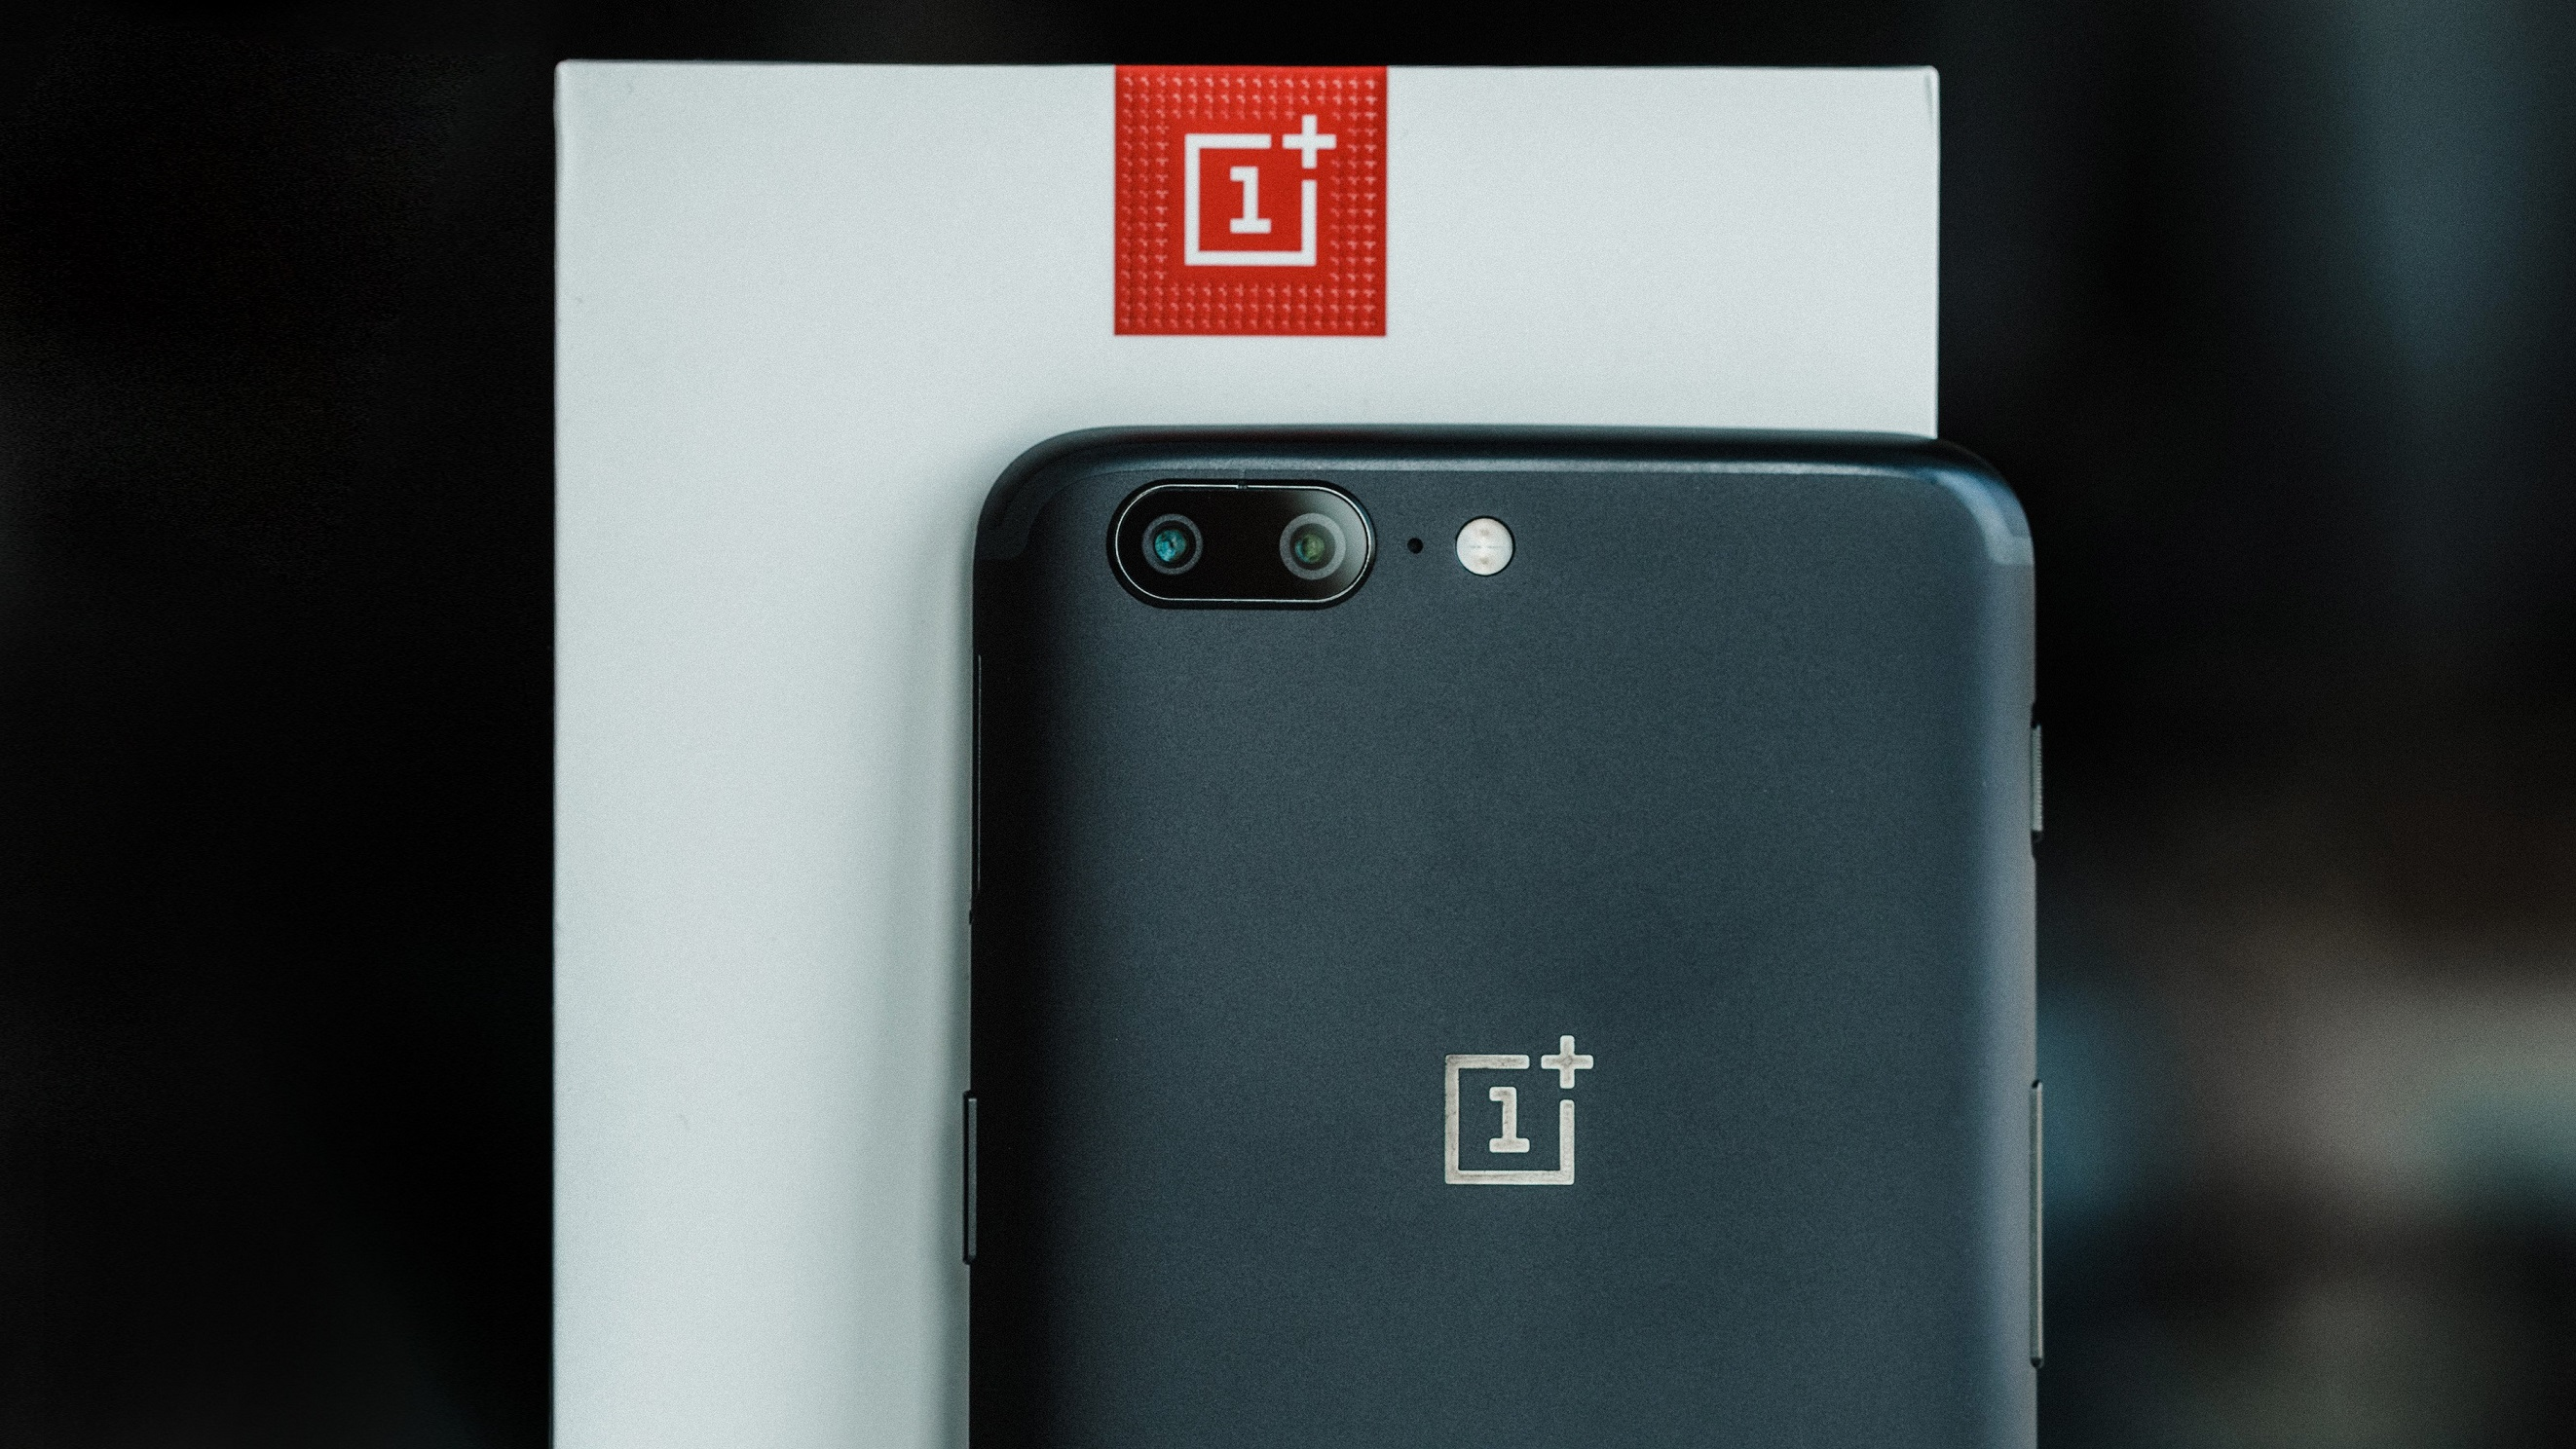 OnePlus 5T Appears On Geekbench, Confirms Snapdragon 835 Processor And 8GB RAM